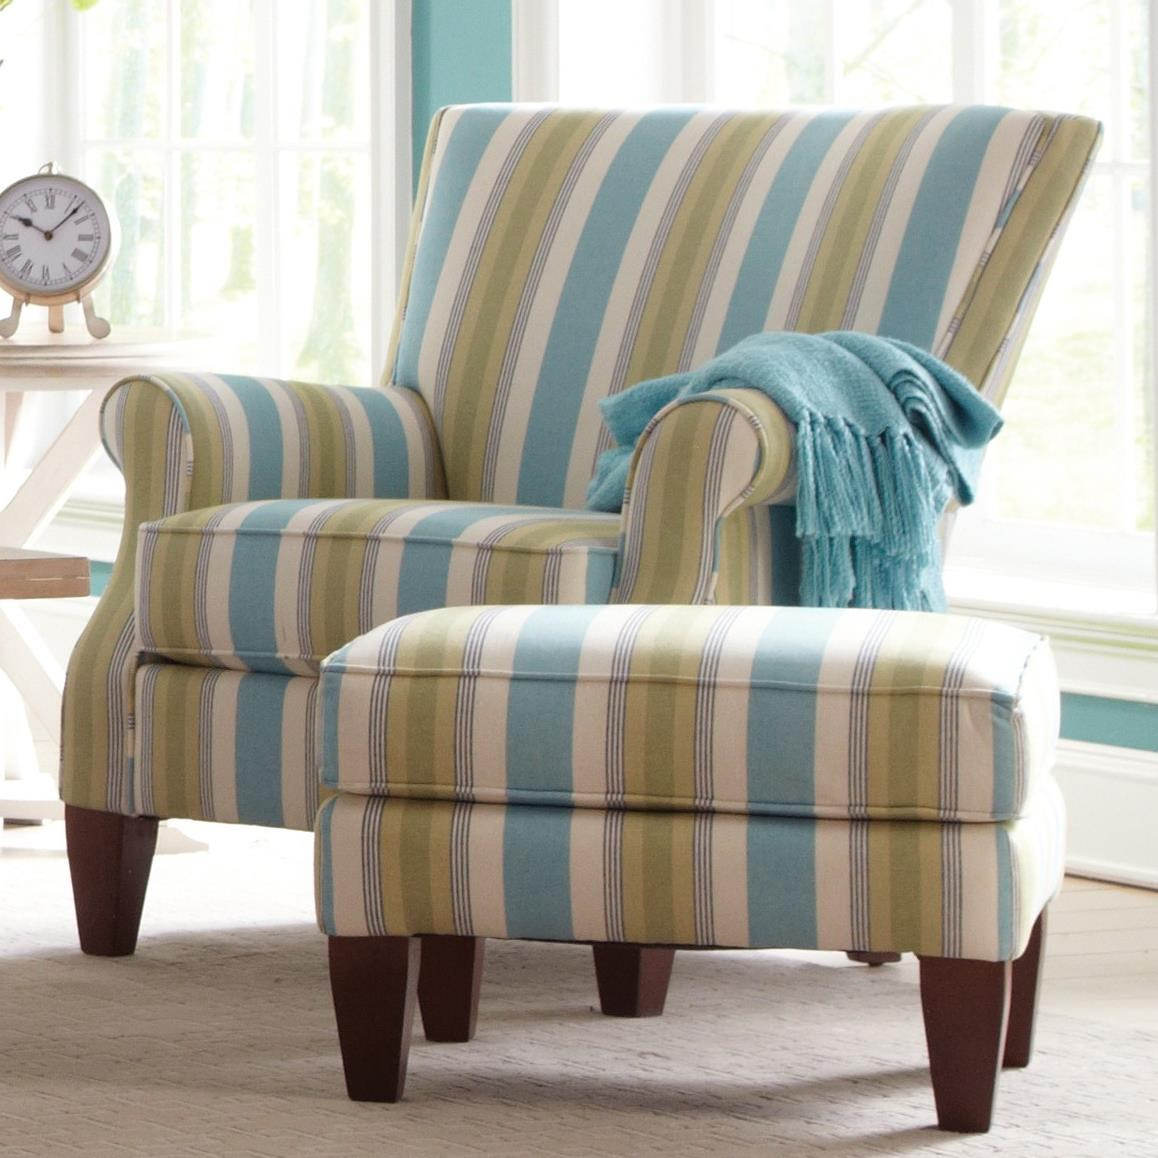 Craftmaster Accent Chairs Chair And Ottoman Set